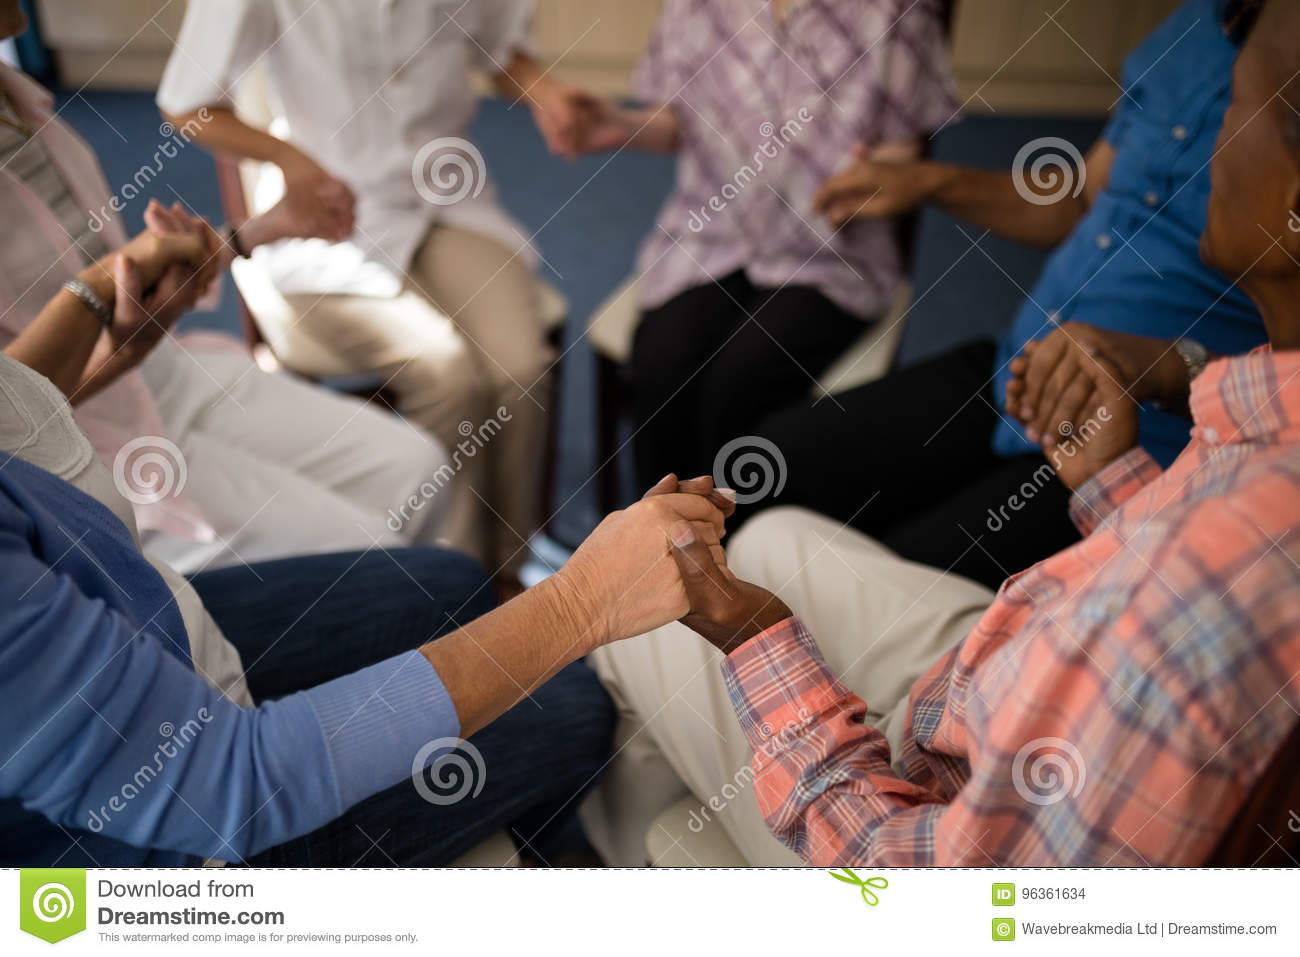 High angle view of seniors and female doctor holding hands while sitting on chairs